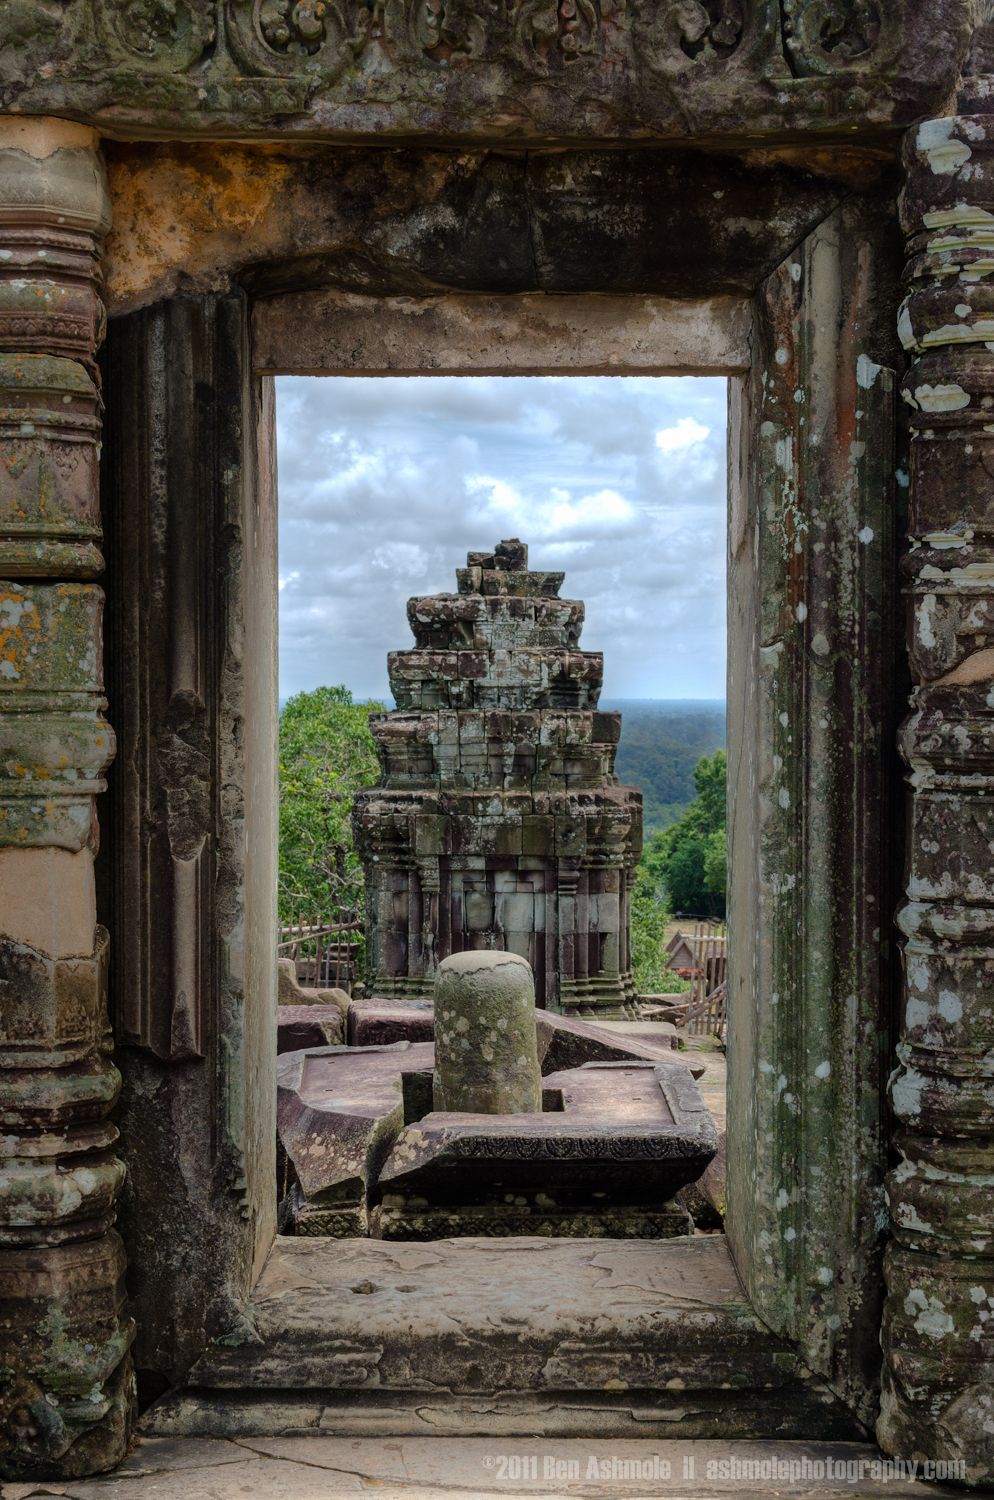 Ancient Doorway View, Angkor, Cambodia, Ben Ashmole